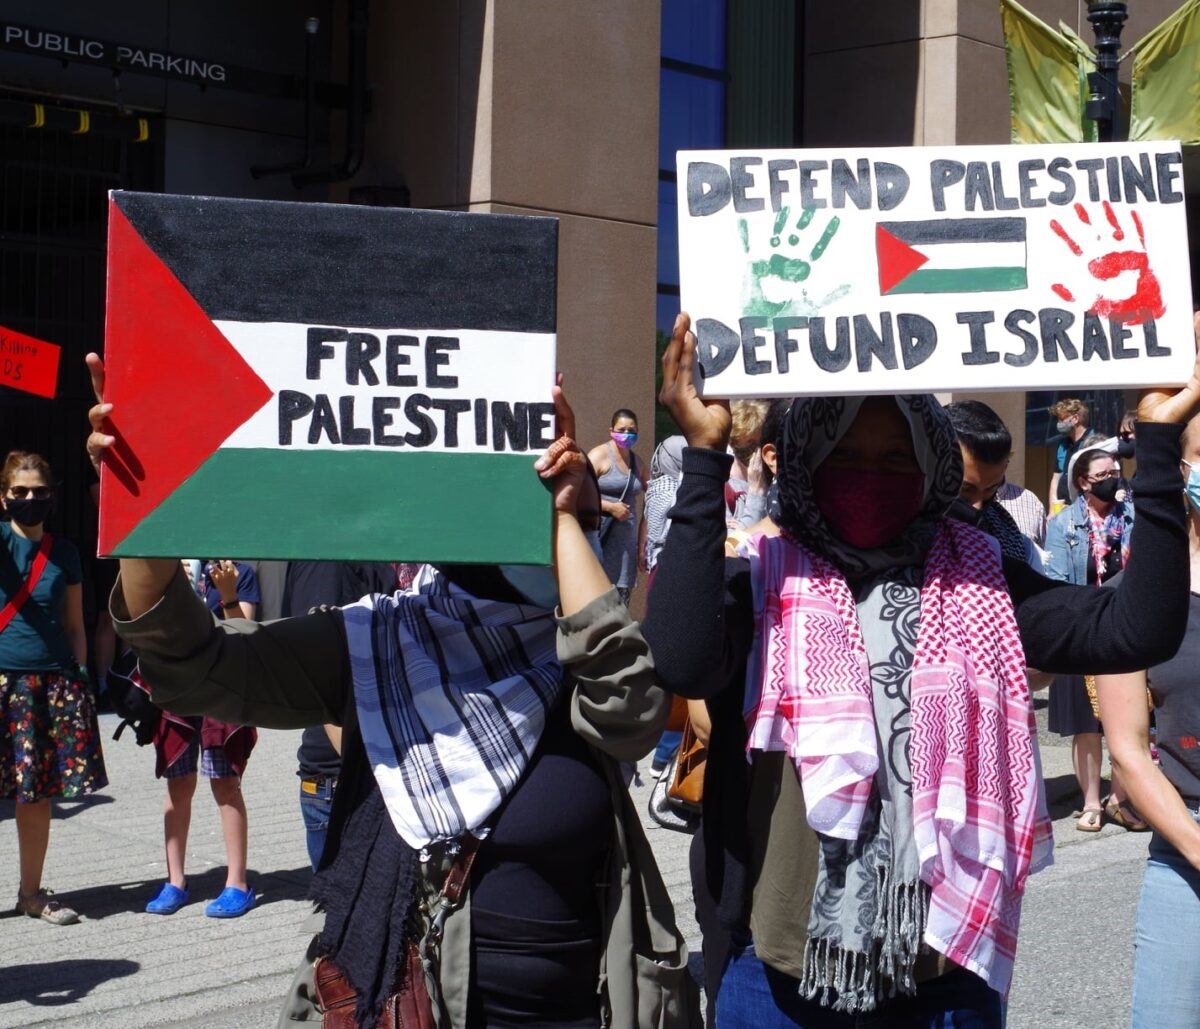 Join us again to Stand with Palestine